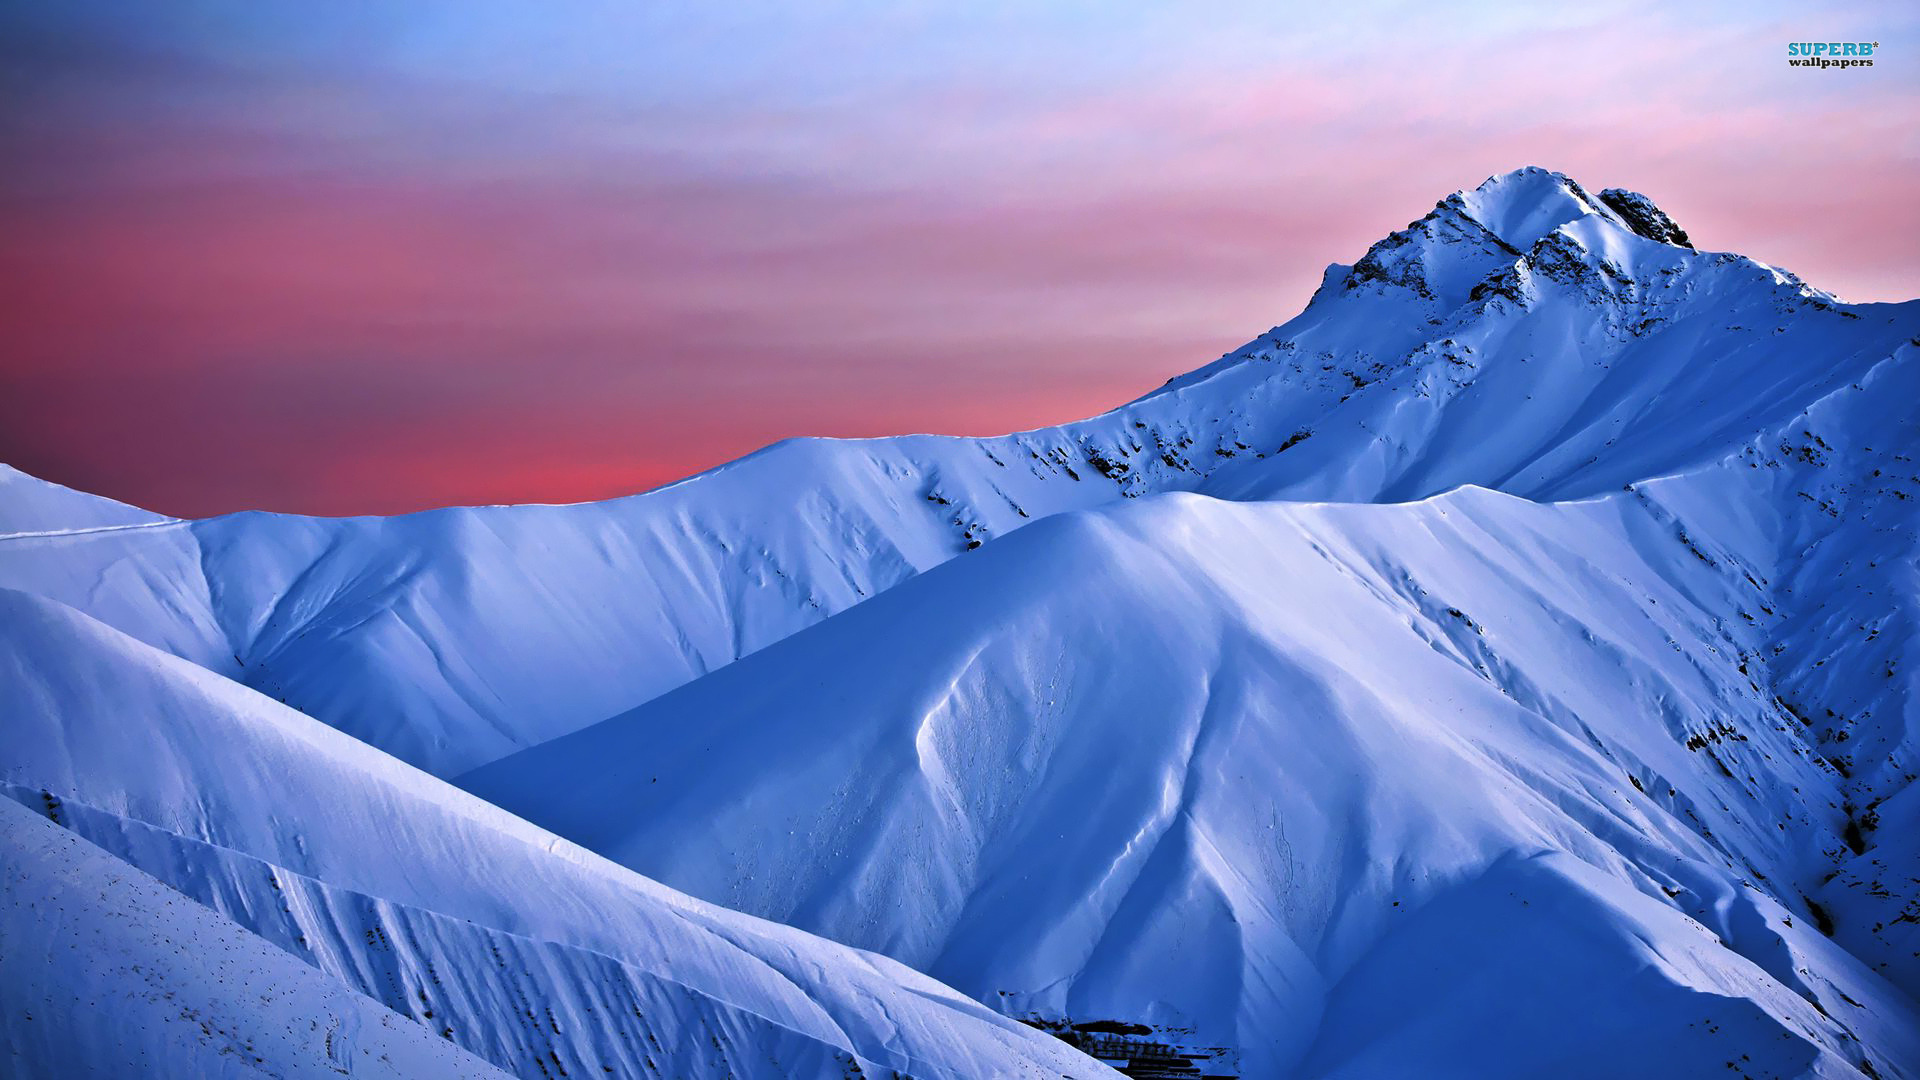 Snow Mountain Wallpapers Full Hd For Free Wallpaper High Resolution Snow Mountain 1920x1080 Download Hd Wallpaper Wallpapertip